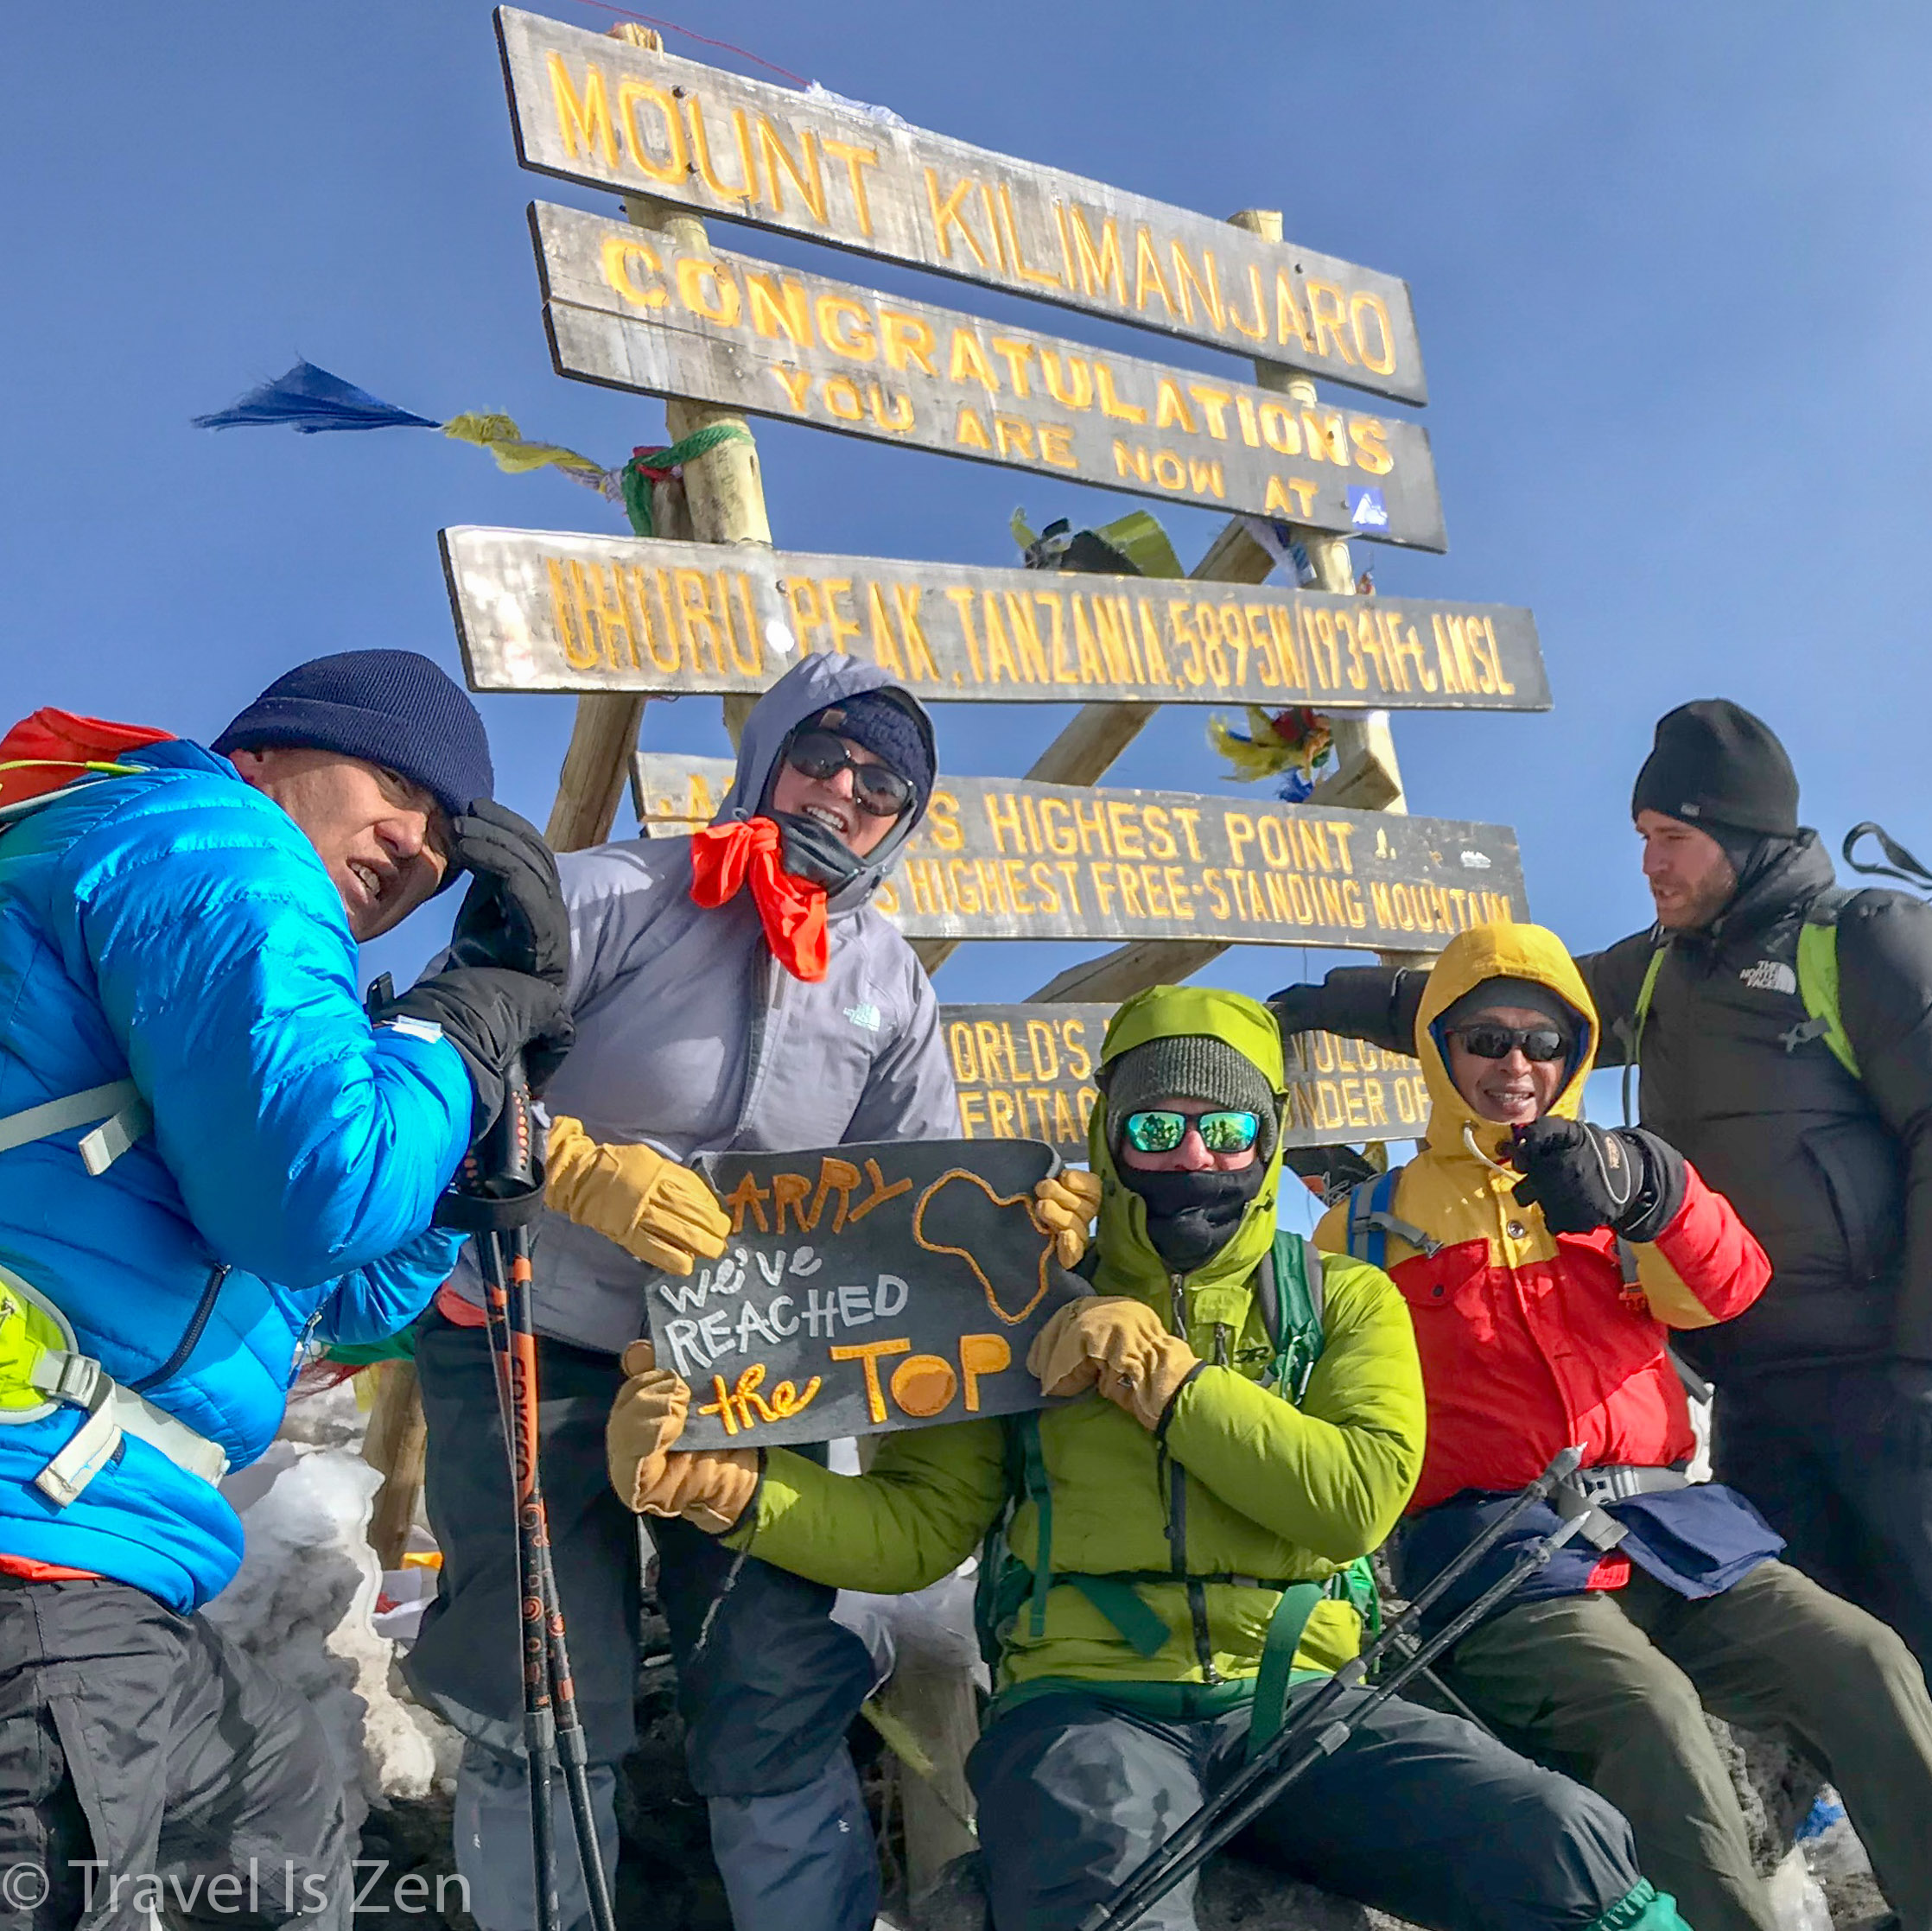 This amazing crew not only made it to Uhuru Peak, but also snapped a freaking photo!!! Left to right: our new friend Ed, cousin-in-law Nicky, cousin Sean, hubby Caffrey and new friend Brian